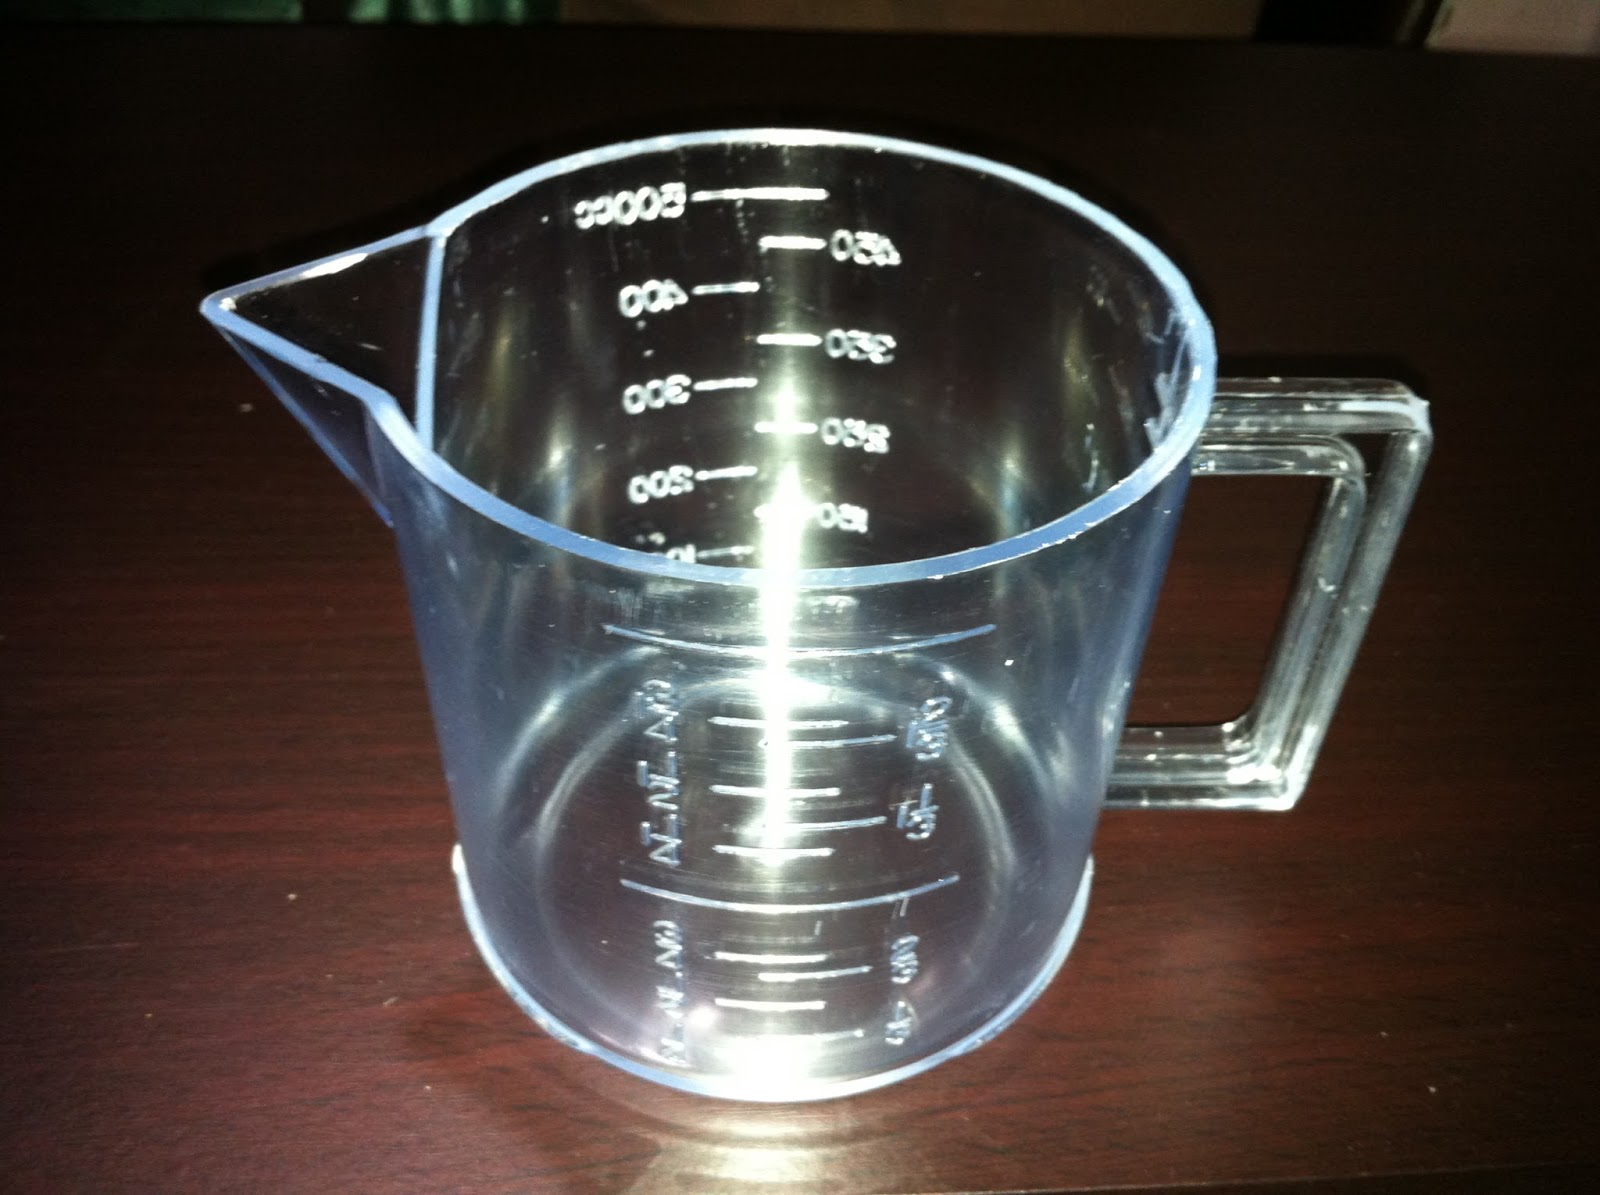 Wing juice section weighing for 8 tablespoons to cups